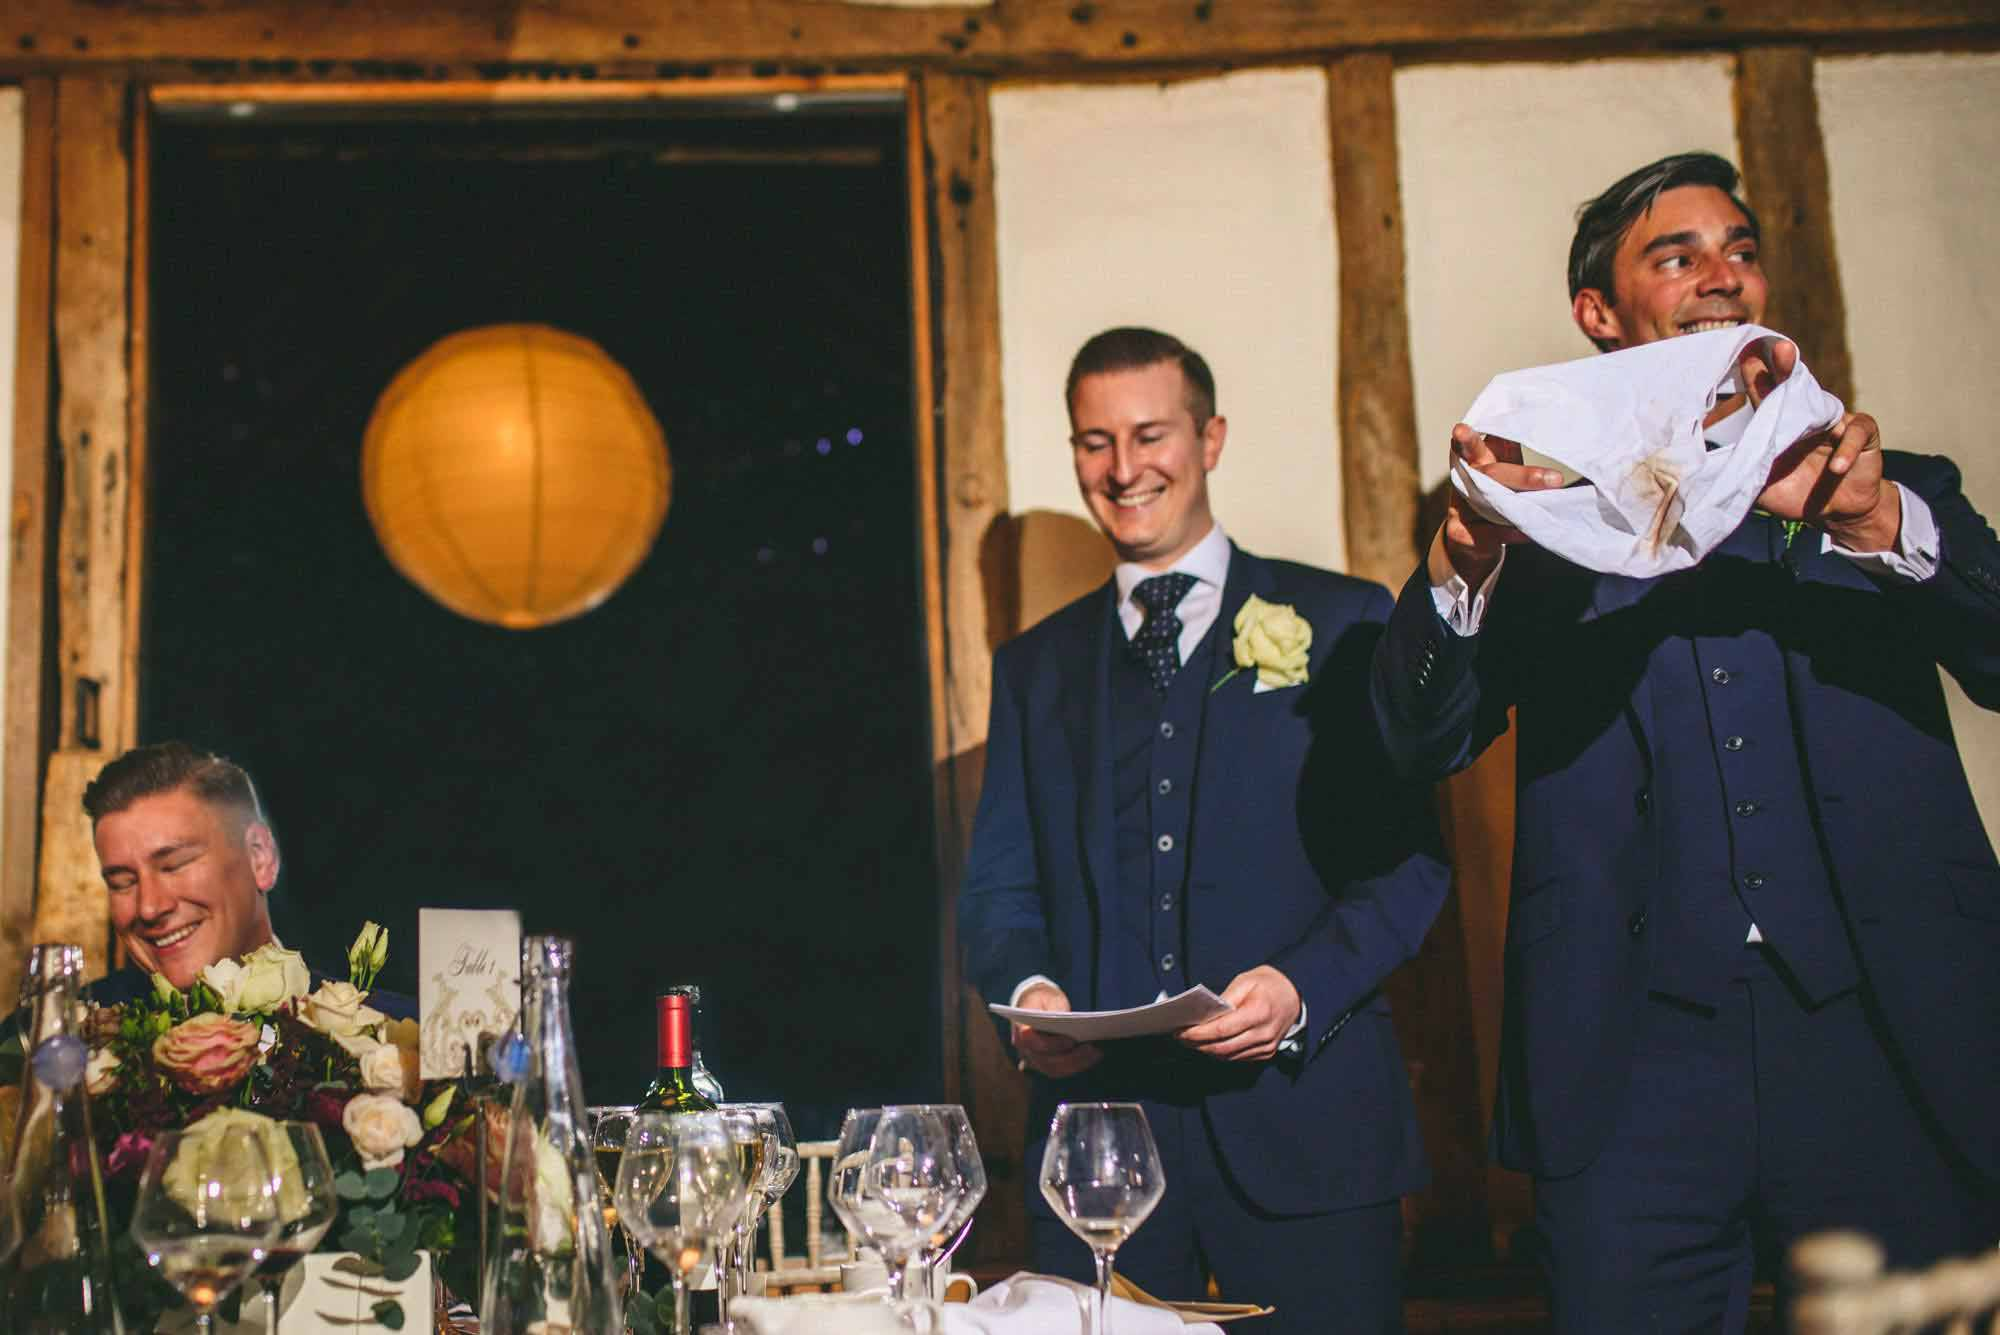 Groomsmen hold up dirty pants during wedding speeches Kent